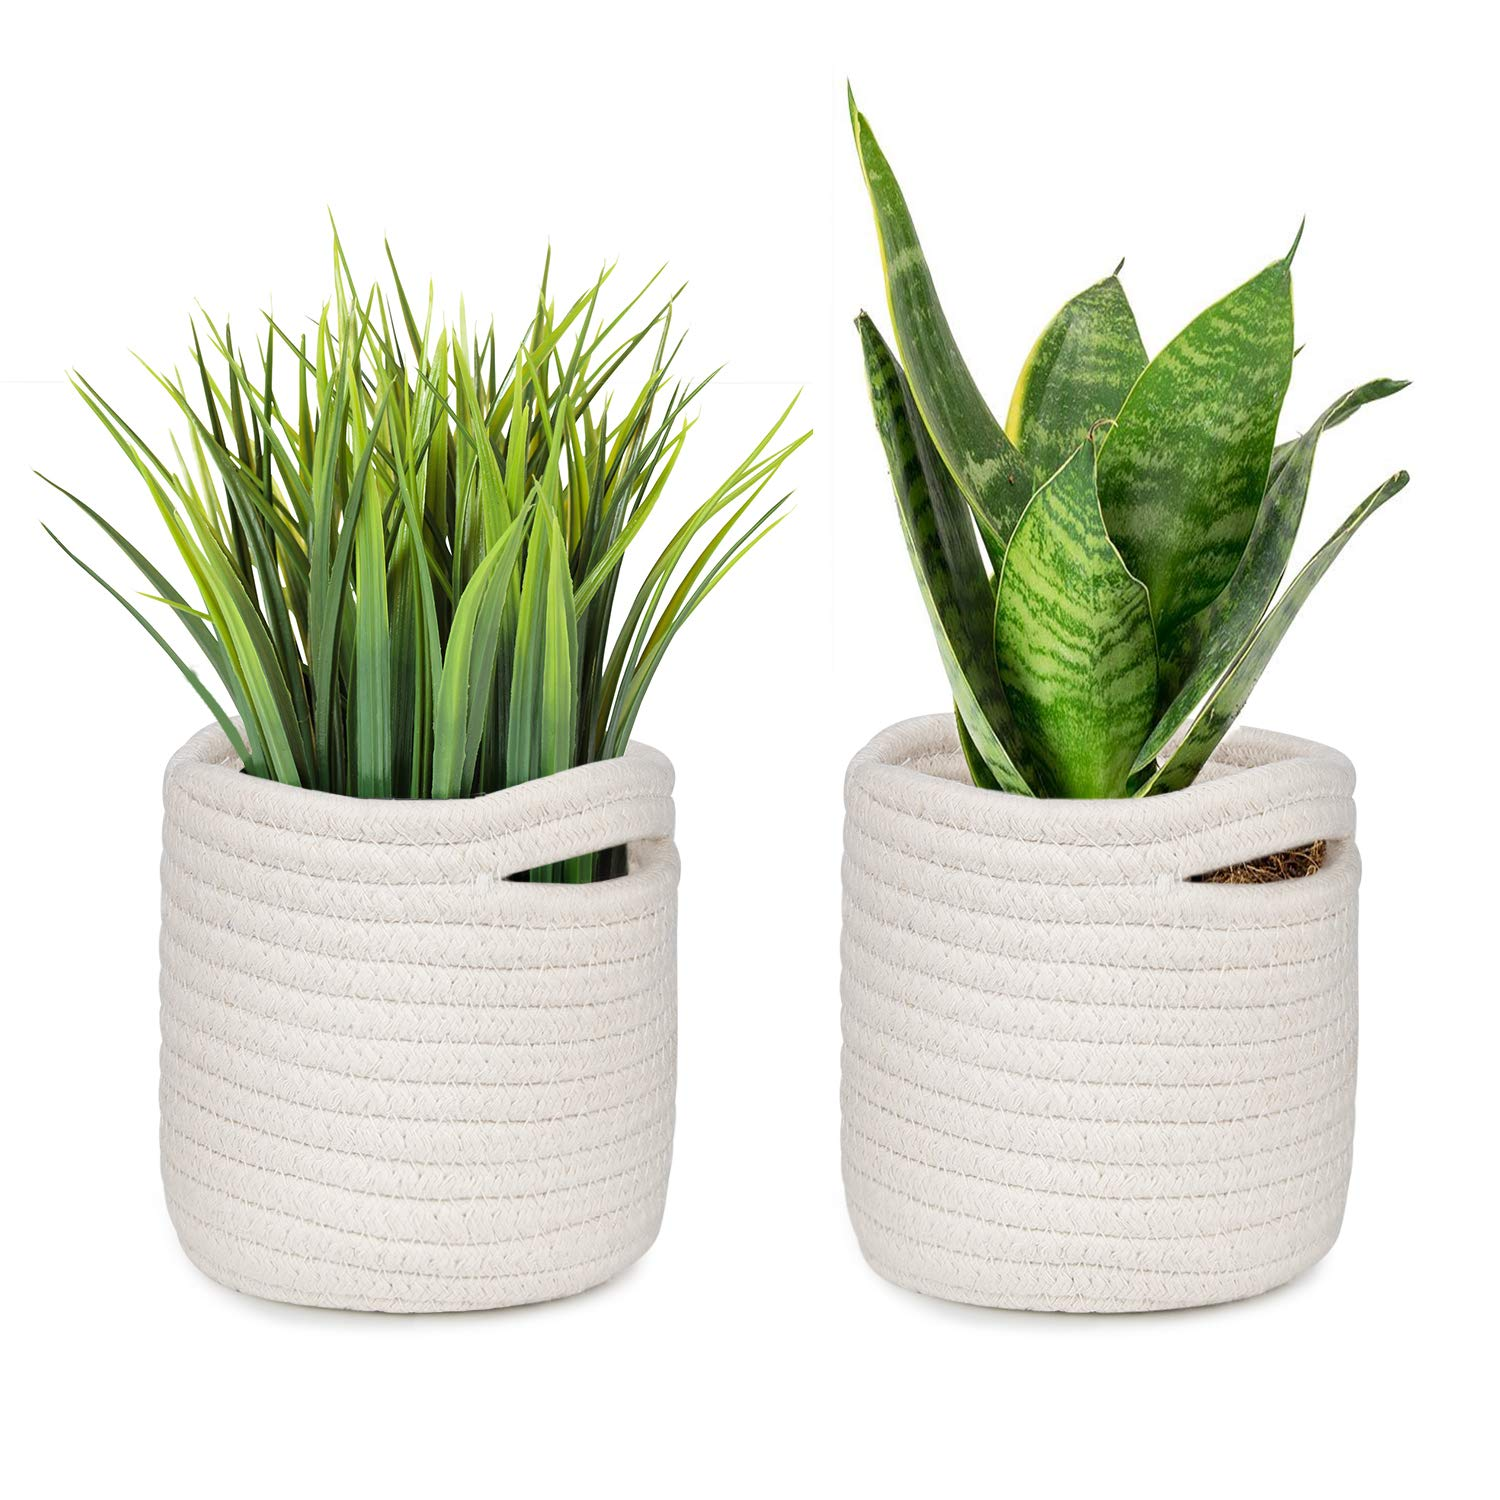 HOMENOTE 4.7 Elegant Basic Succulent Pots Cover of 2 Set for Small Plants Cream White Woven Plant Basket for 3 to 4 Small Succulent Planters Cotton Rope Storage Organizer Basket for Table or Desk